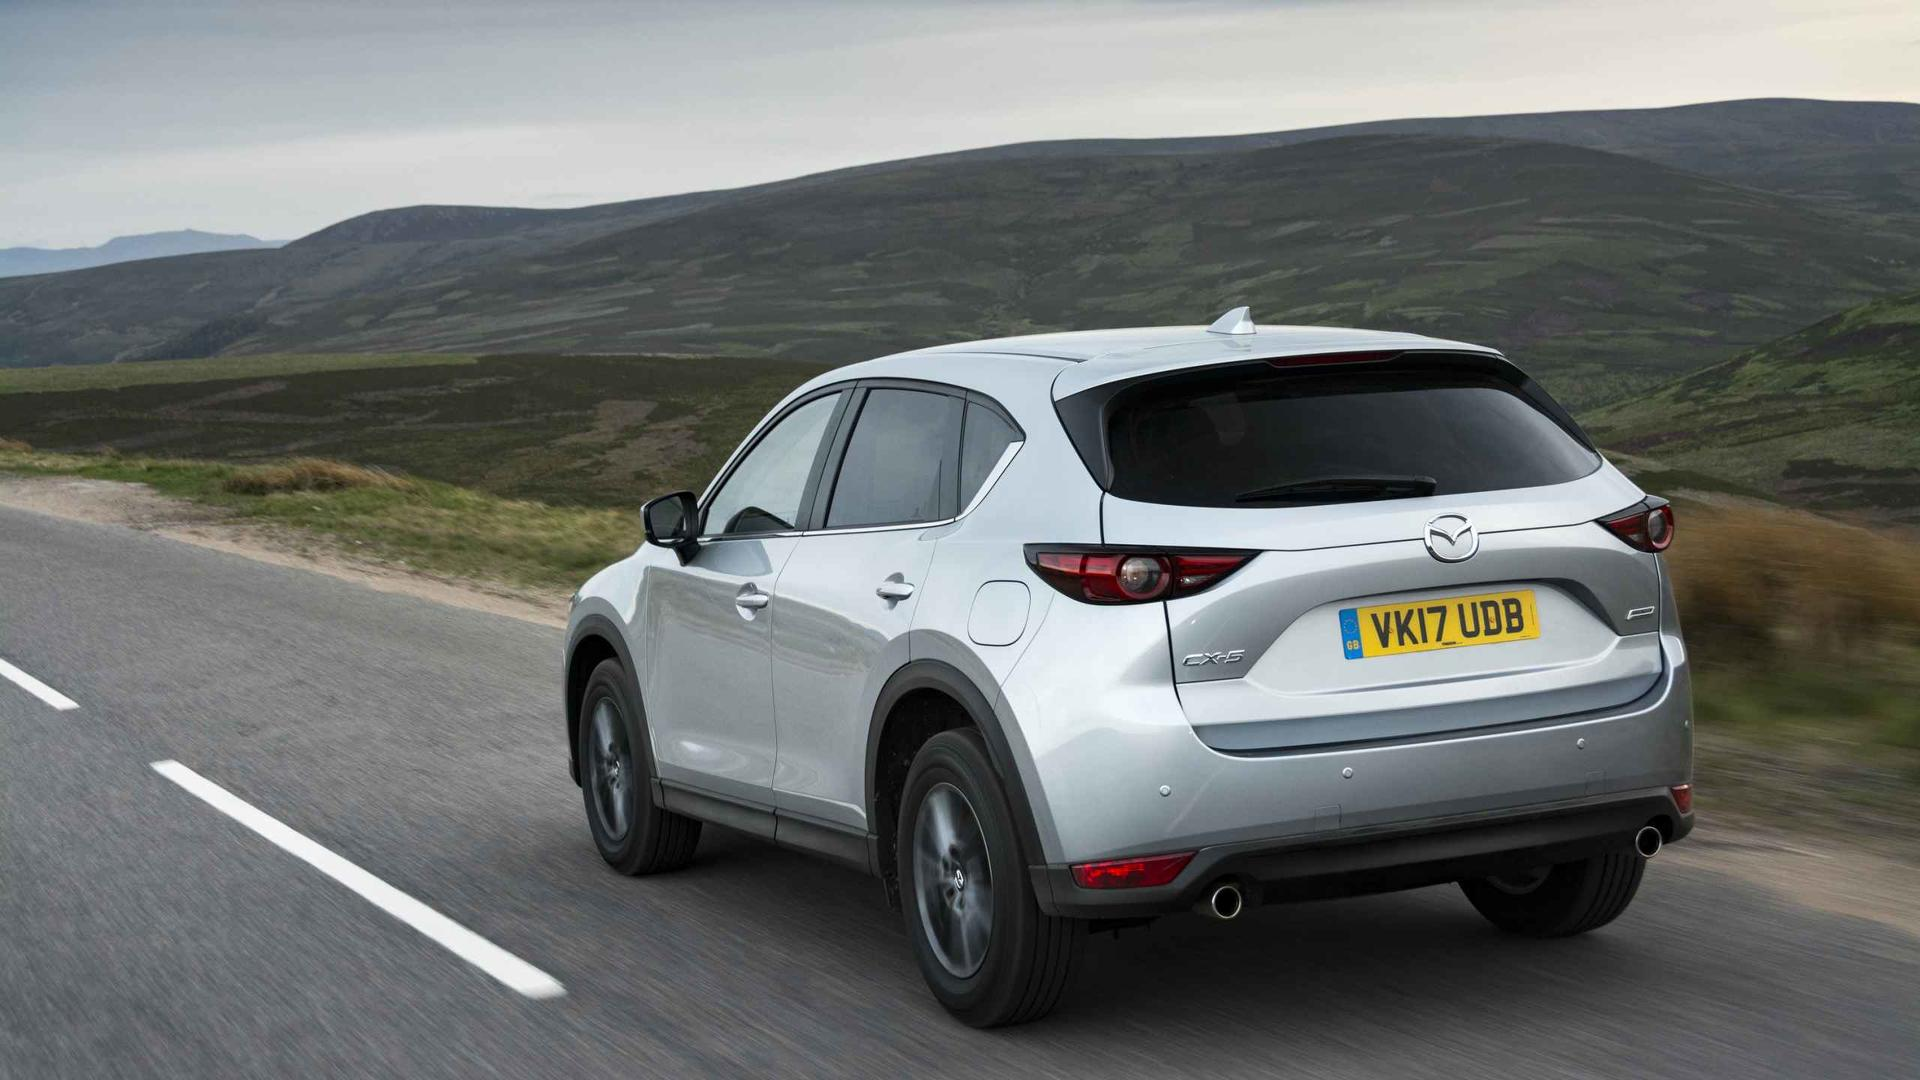 road cx reviews review gt specifications mazda and fuel test pricing drive economy